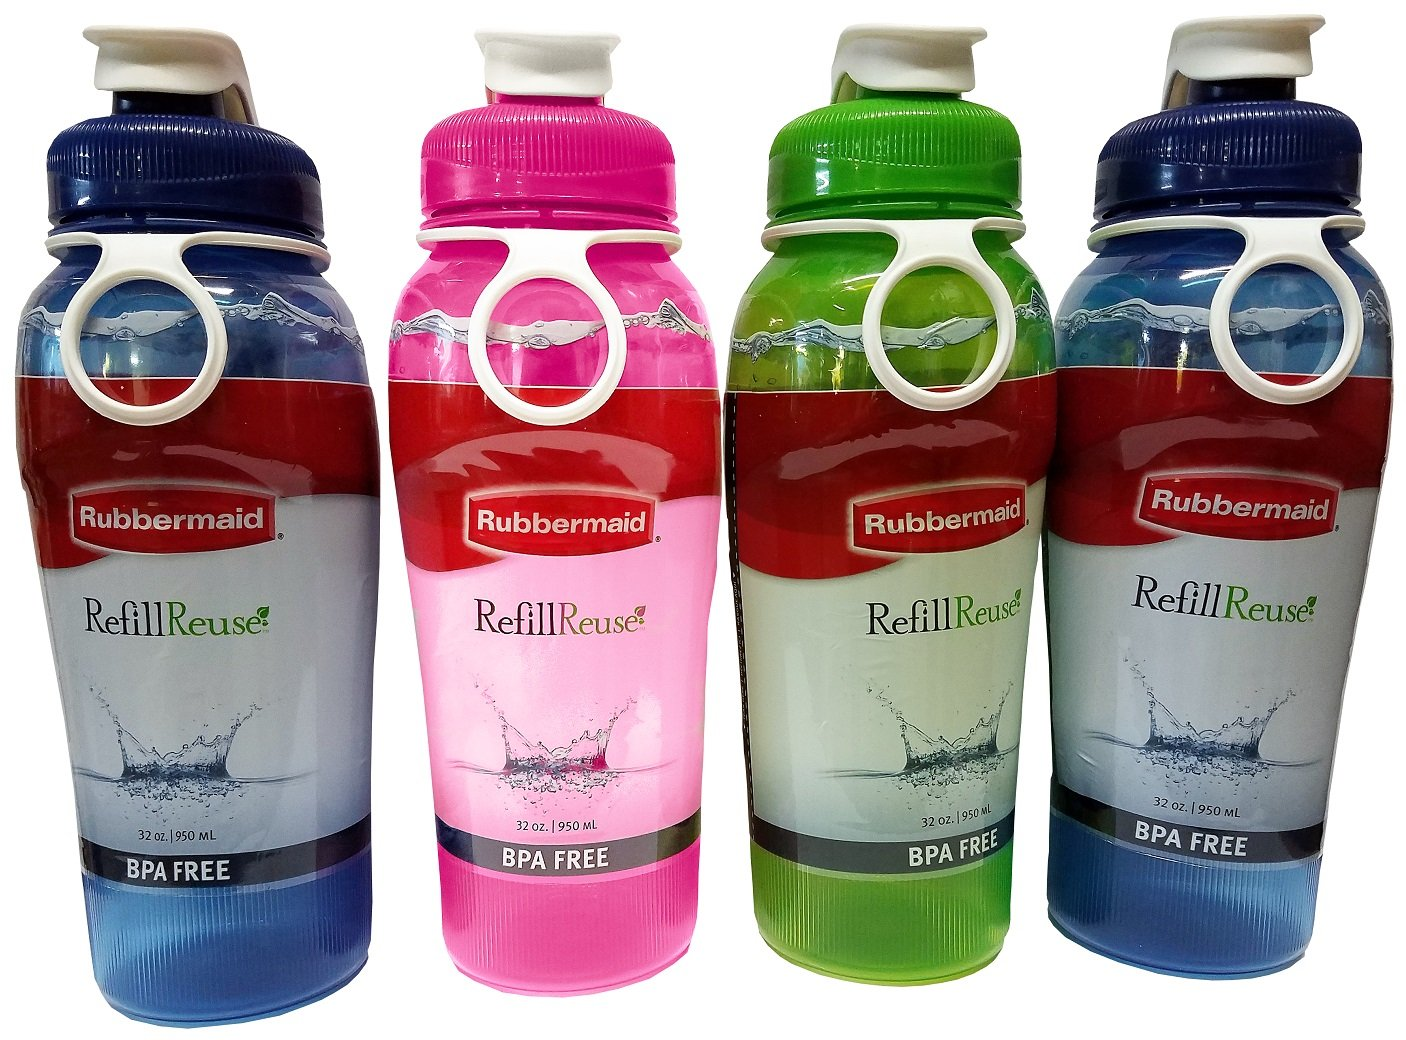 Rubbermaid Refill, Reuse 32-Ounce Jumbo Size Chug Bottle, Assorted Colors, Pack of 4 Bottles